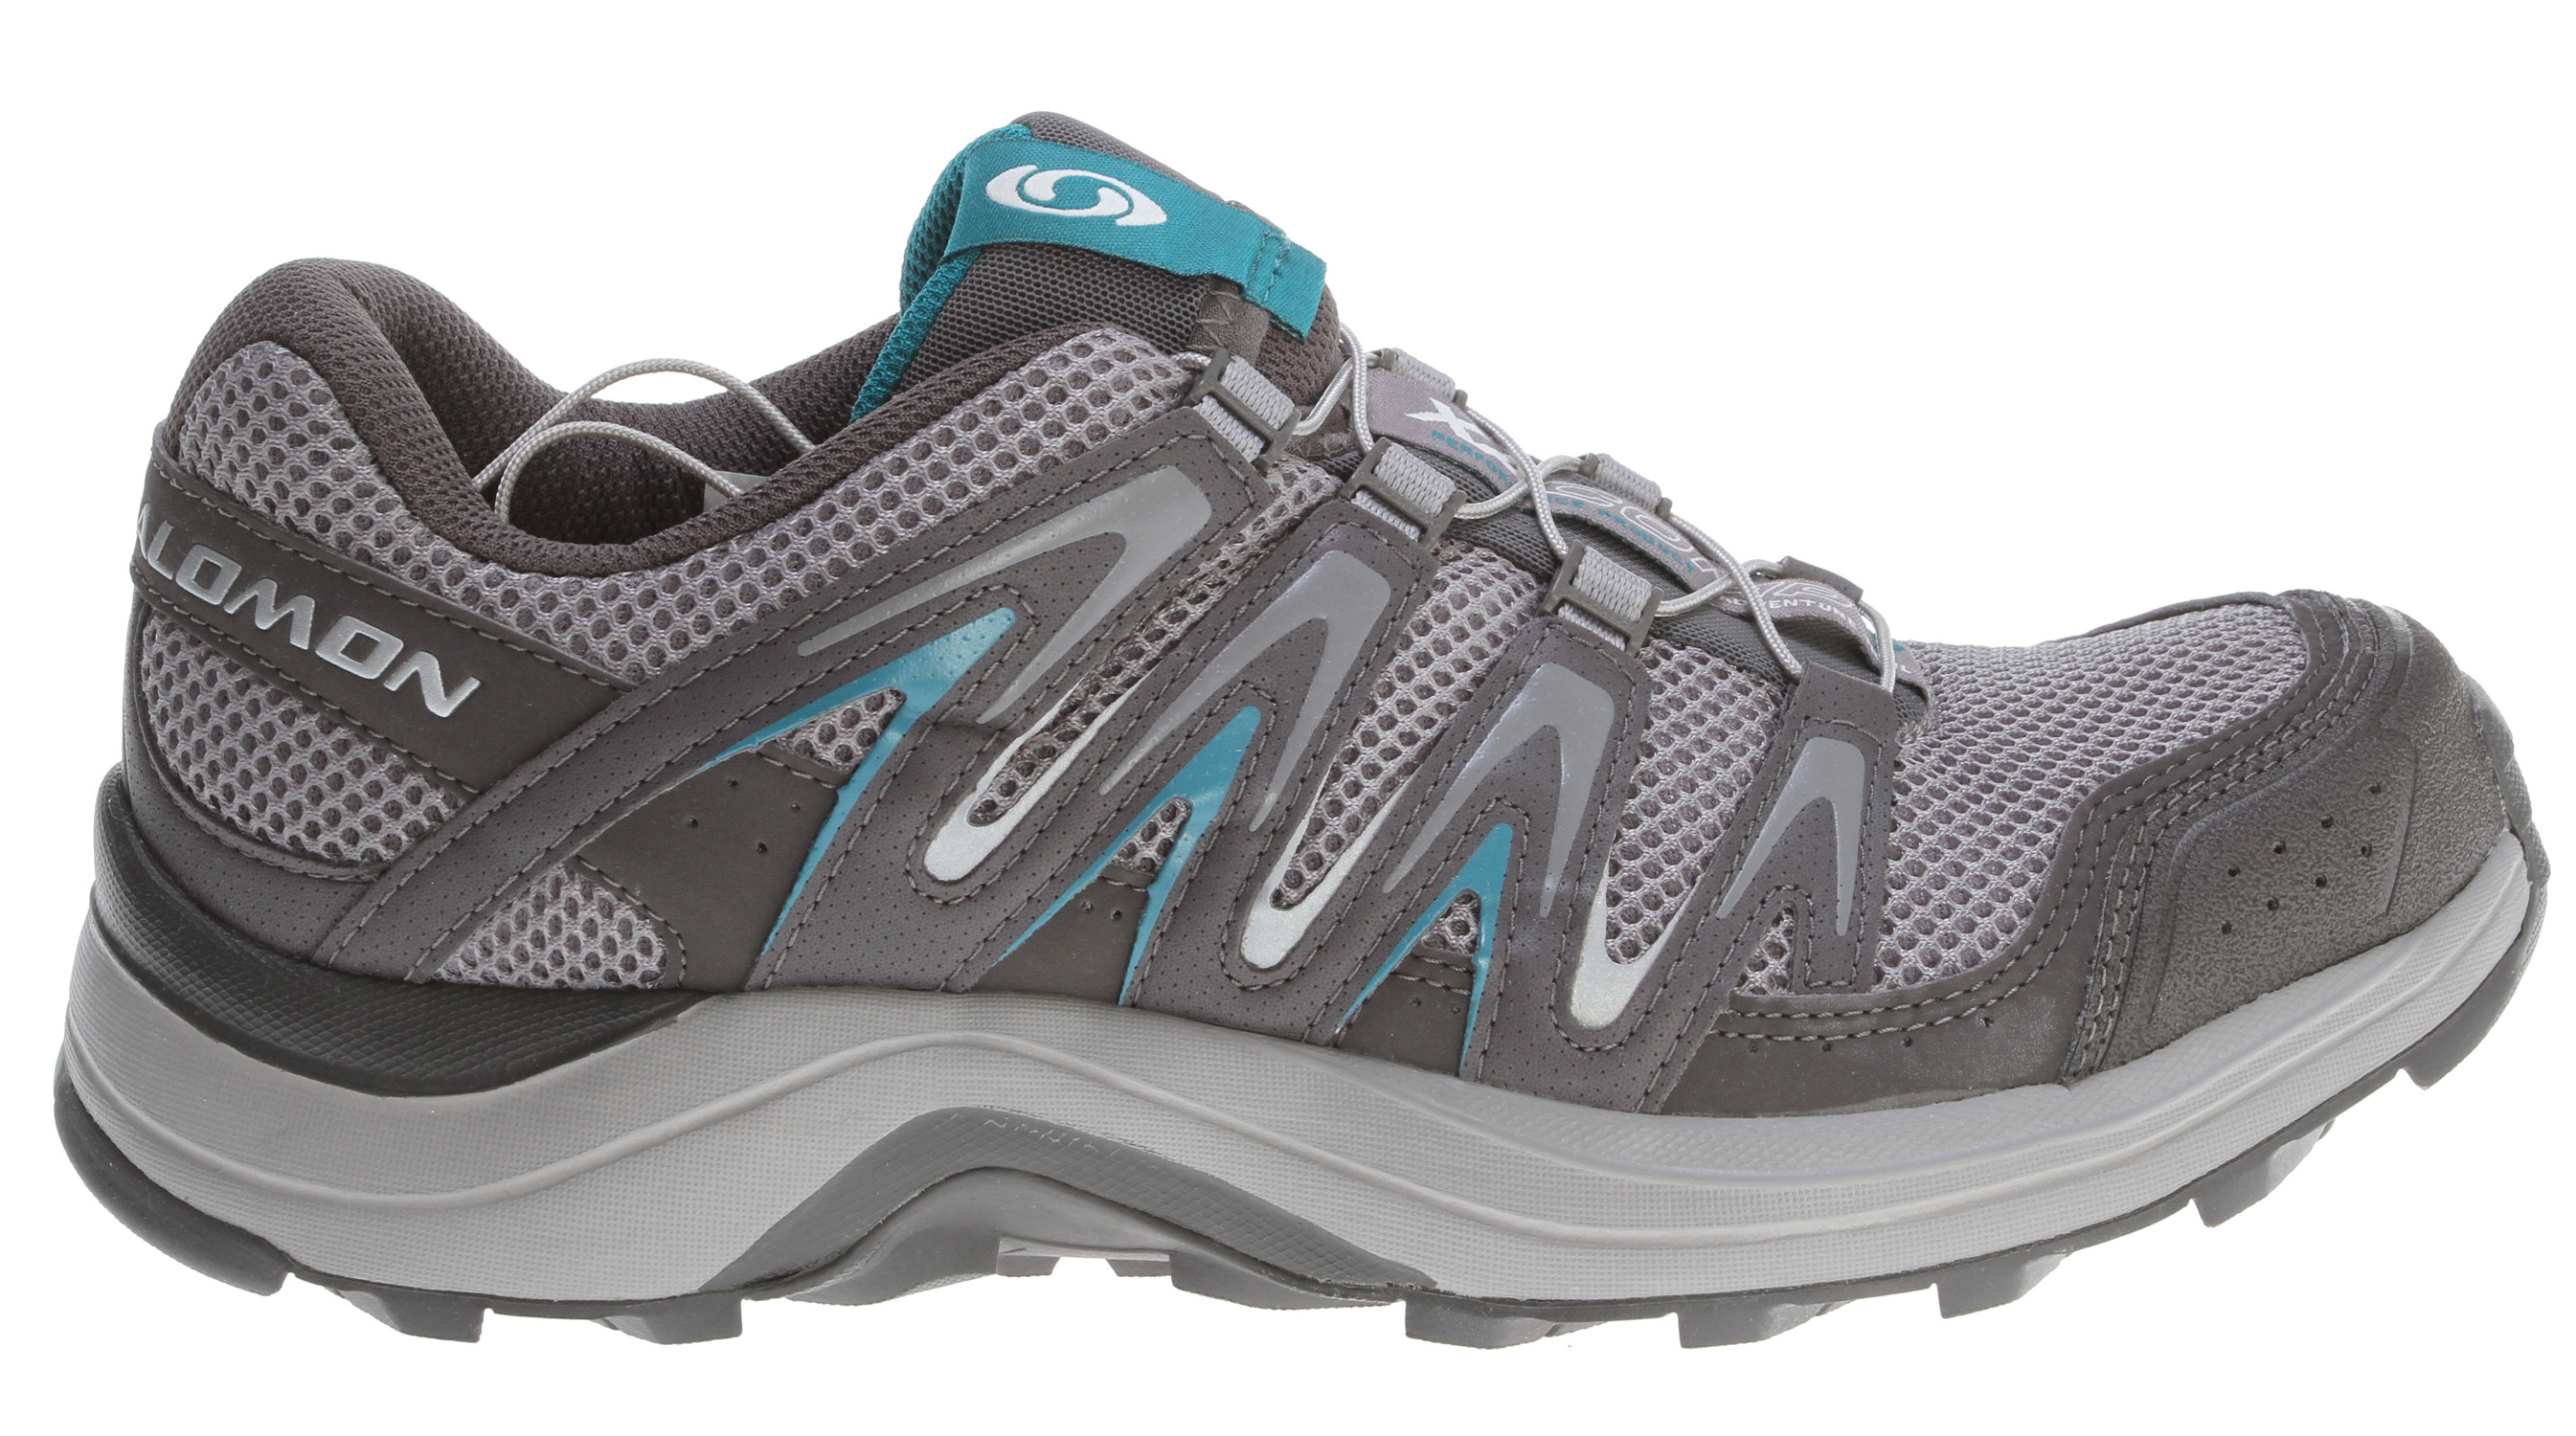 Camp and Hike Stable, comfortable trail shoe for fast hiking and some running.  XA Comp 7 sports a low profile chassis and midsole, new lug geometry for better grip, and outstanding cushioning.Key Features of the Salomon XA Comp 7 Hiking Shoes:  Weight: 10.1oz  Quick drying breathable mesh  Textile  Strategically placed textile parts  Lace pocket  Sensifit   Protective rubber toe cap  Quicklace   Optimized fit for women  Tongue cover  Contagrip HA  Non marking running Contagrip  Ortholite sockliner  Molded EVA midsole  Midsole height: 11mm/21mm - $83.95